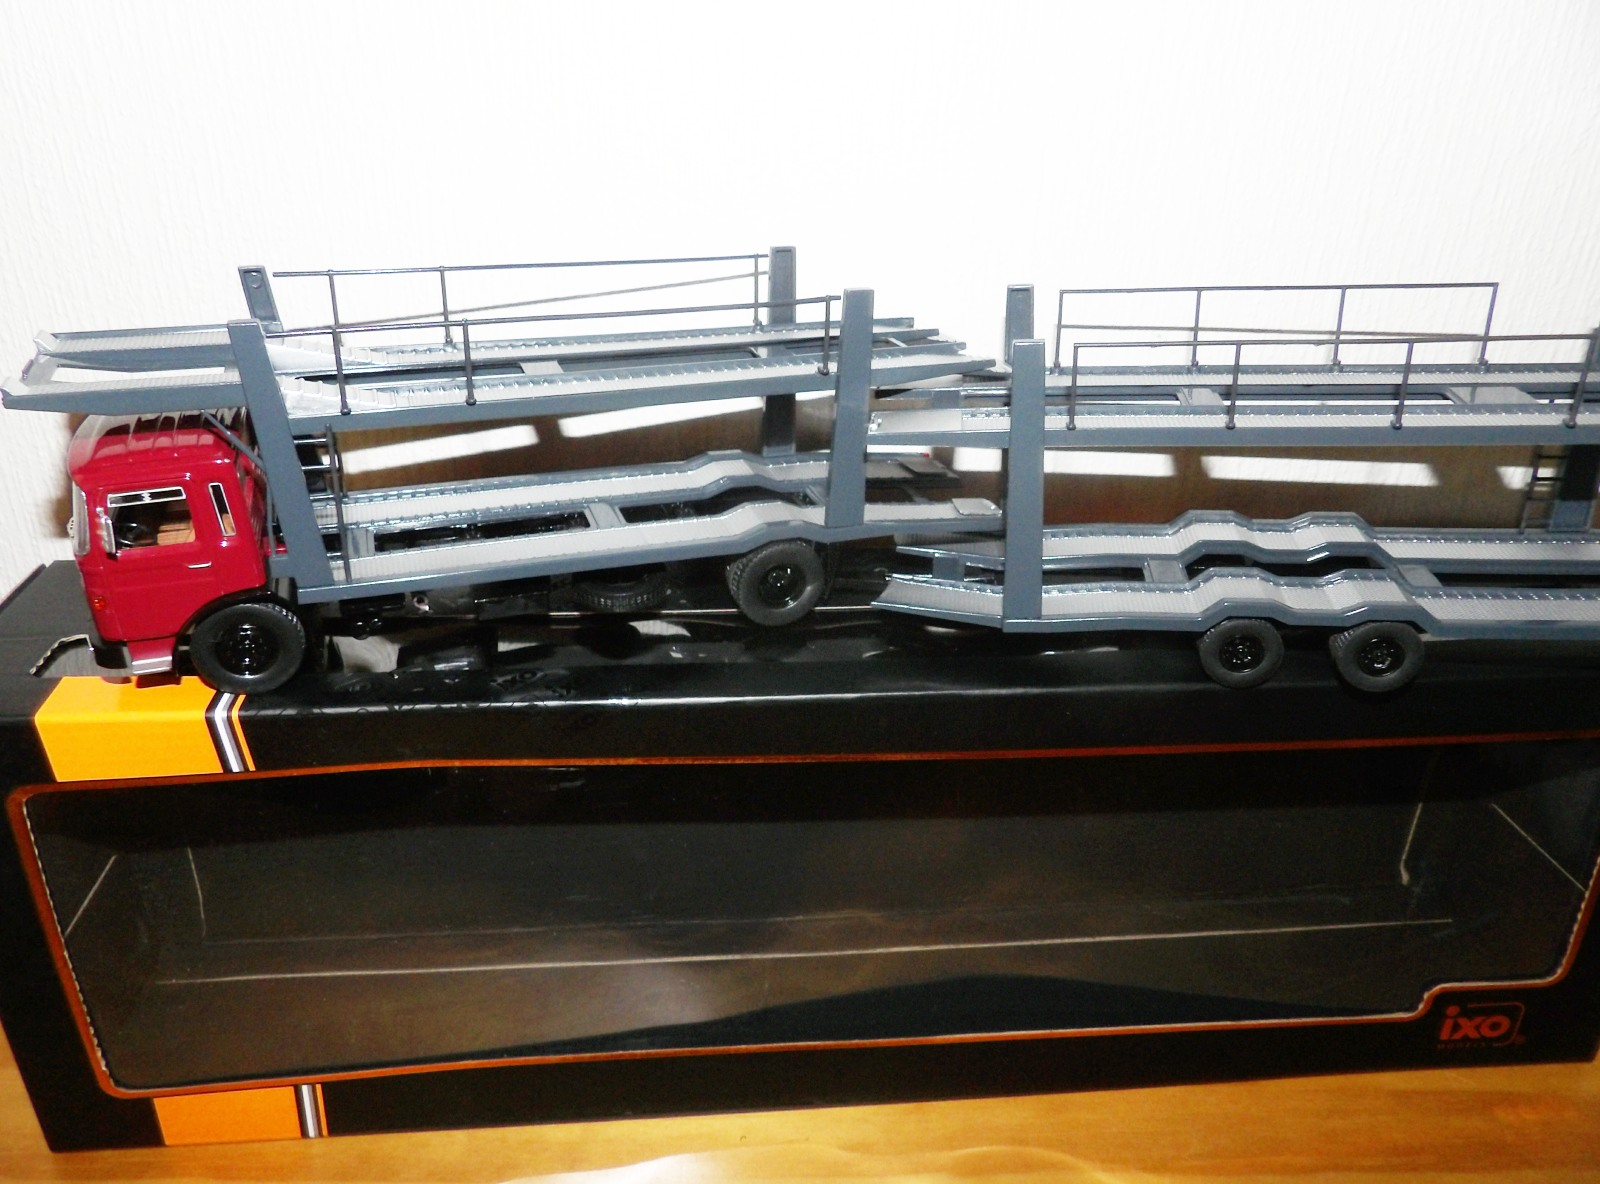 Lot 707 - 1.43 Scale MAN Car Transporter with 2 Deck Trailer. P&P Group 1 (£14+VAT for the first lot and £1+